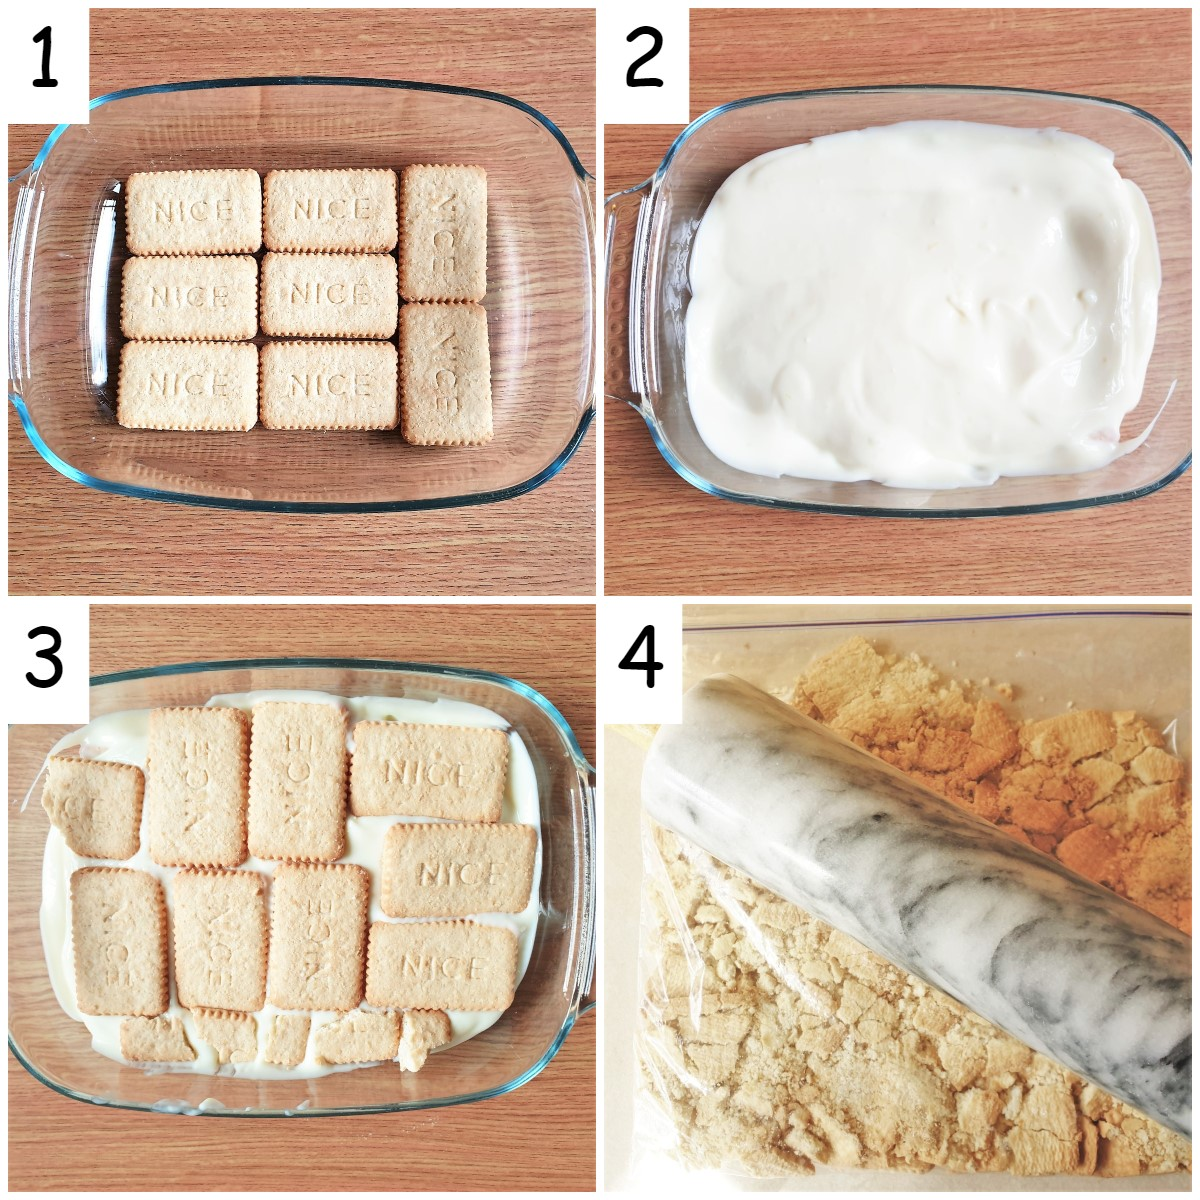 4 images showing steps for assembling the cheesecake.